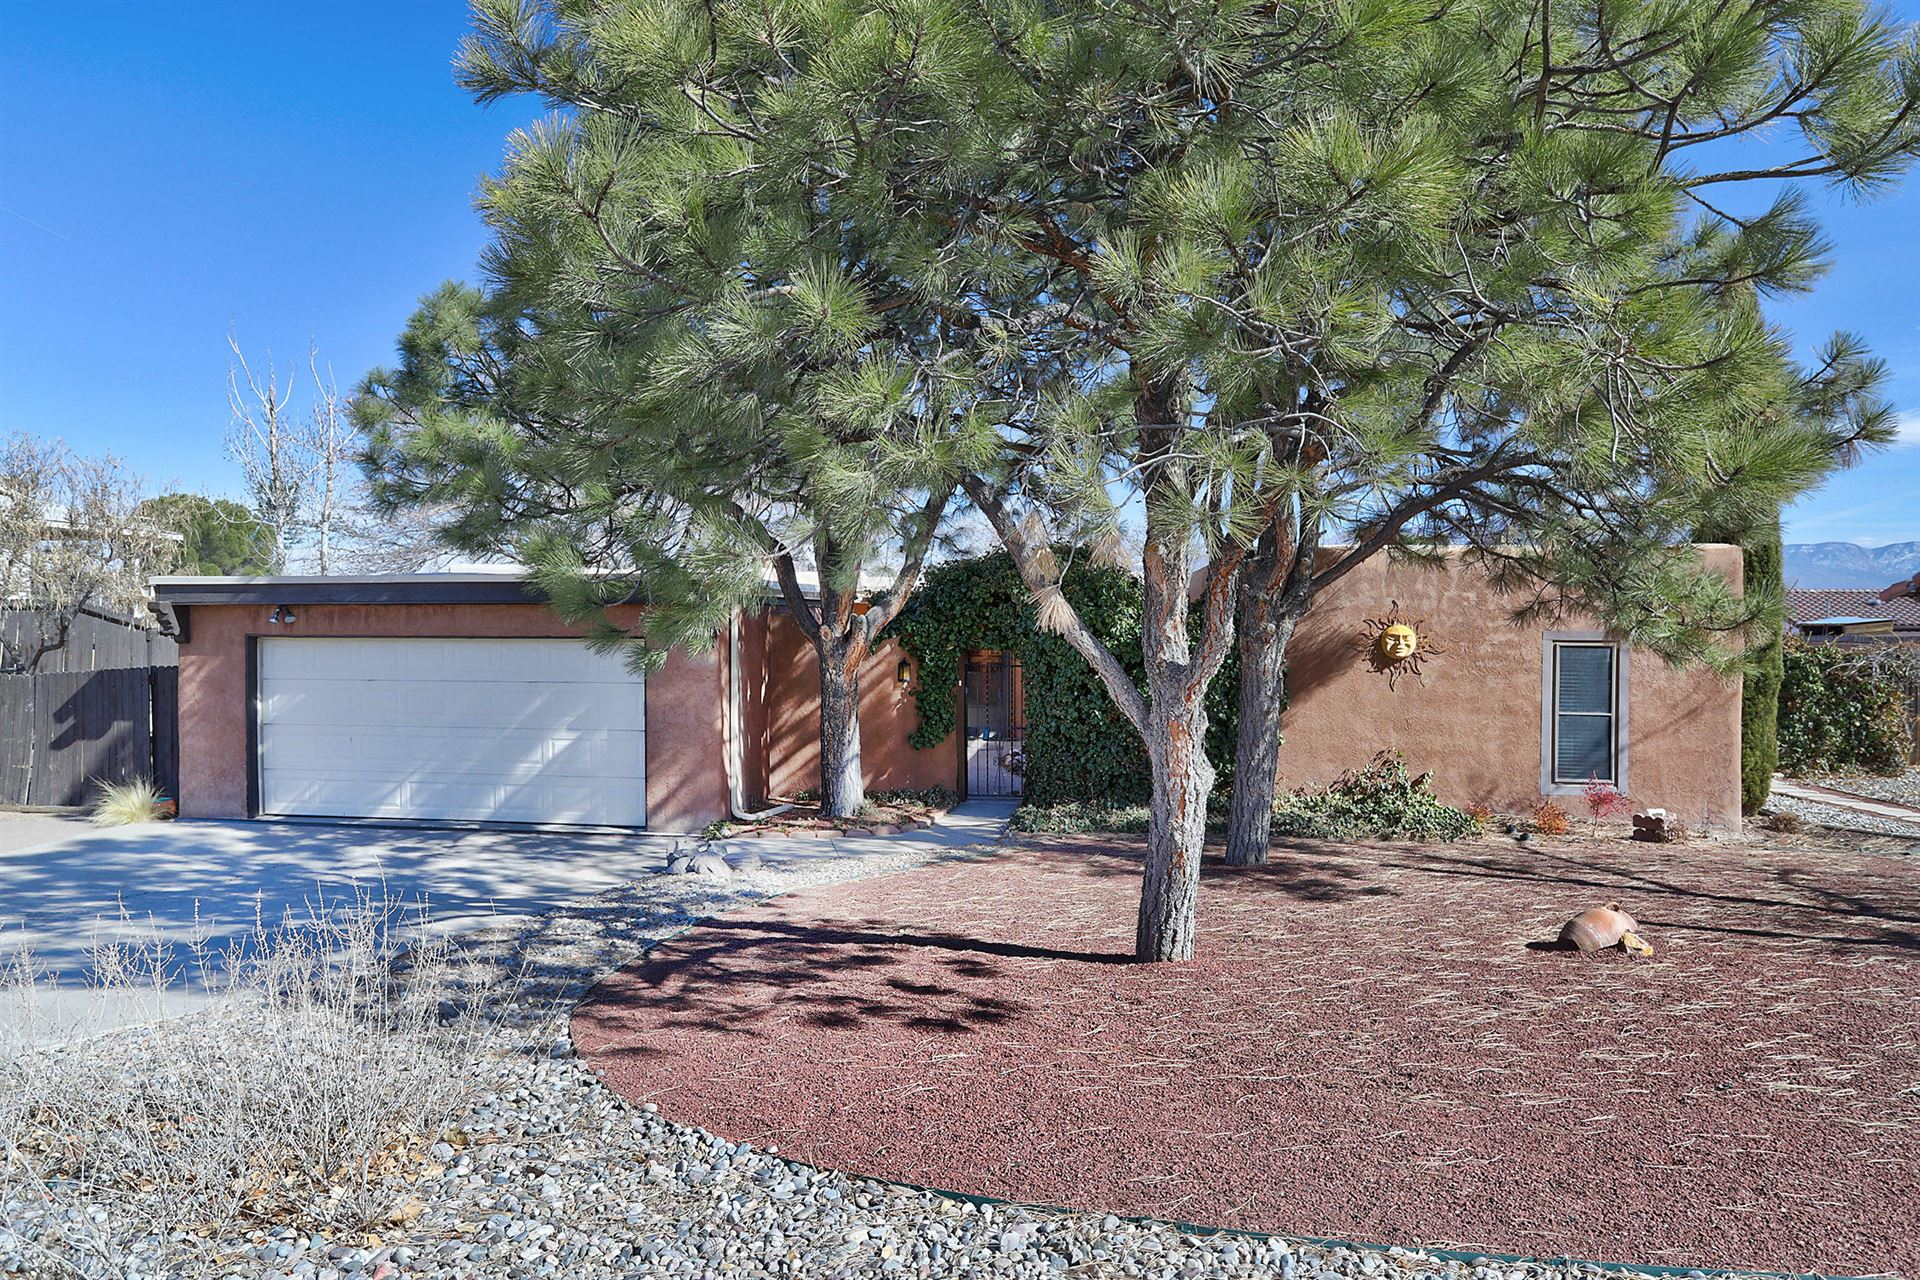 10004 GREENE Avenue NW, Albuquerque, NM 87114 - MLS#: 985155